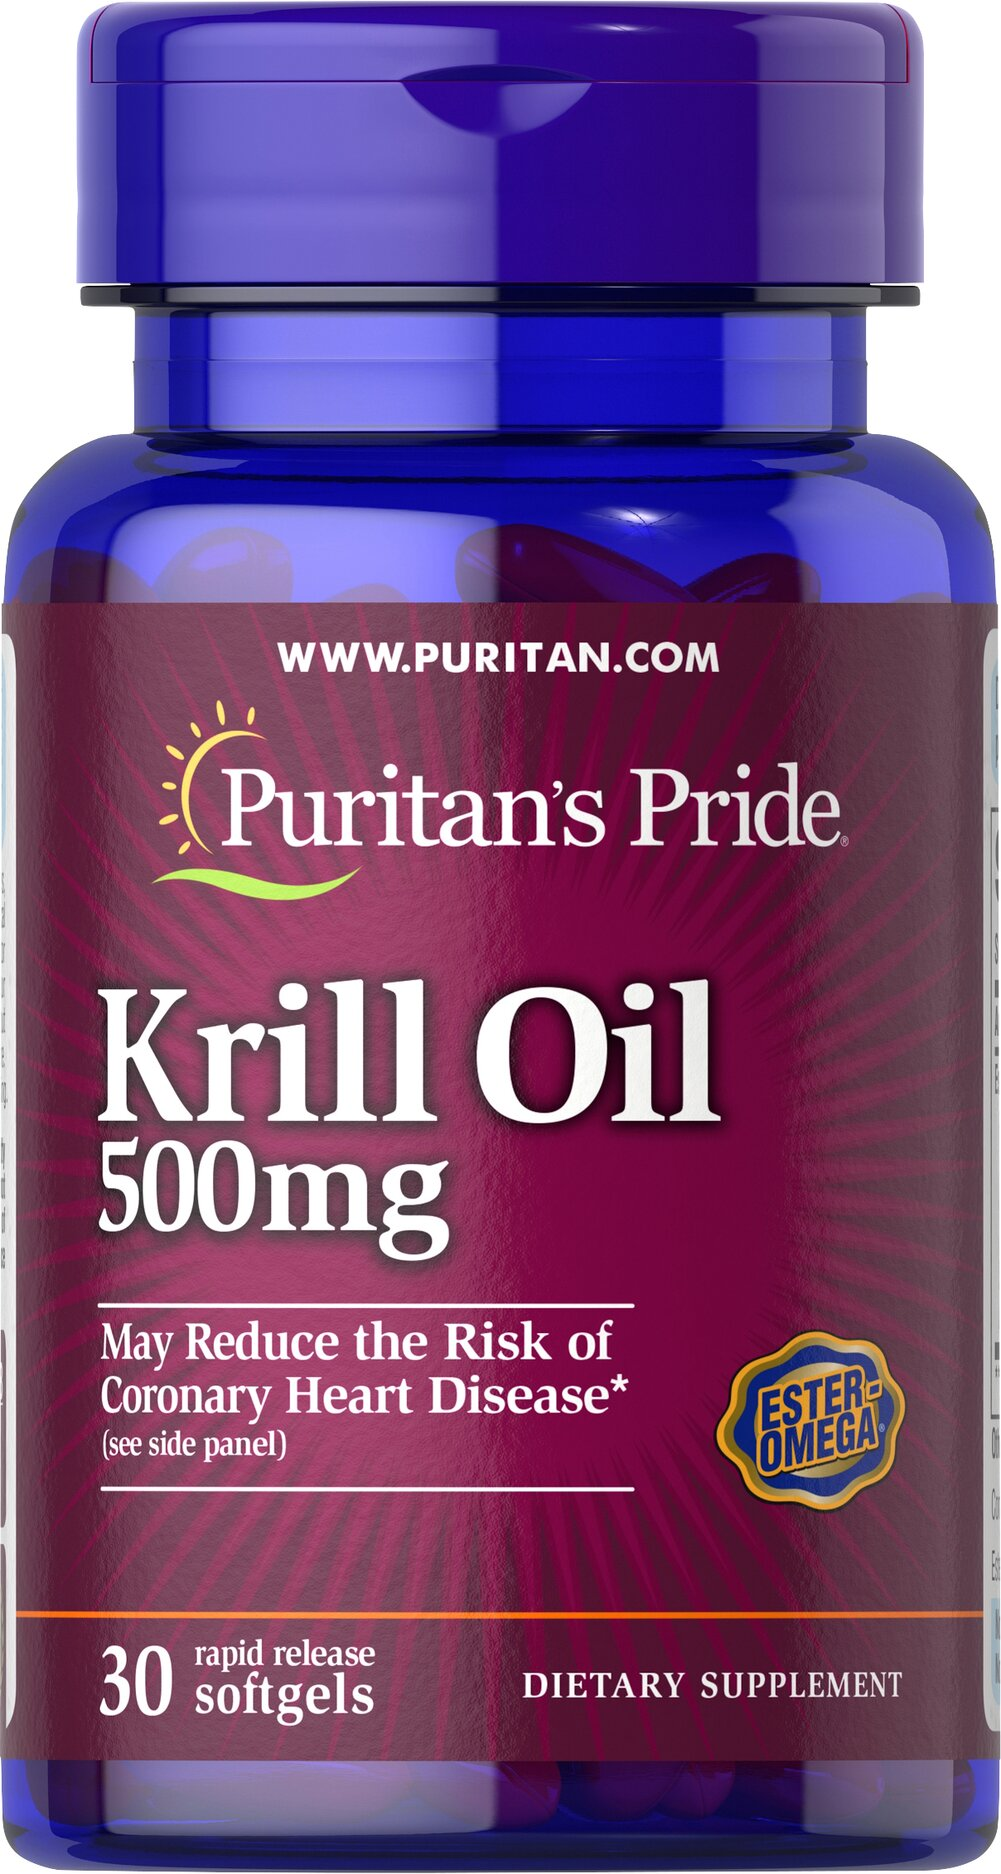 Red Krill Oil 500 mg (86 mg Active Omega-3) Thumbnail Alternate Bottle View